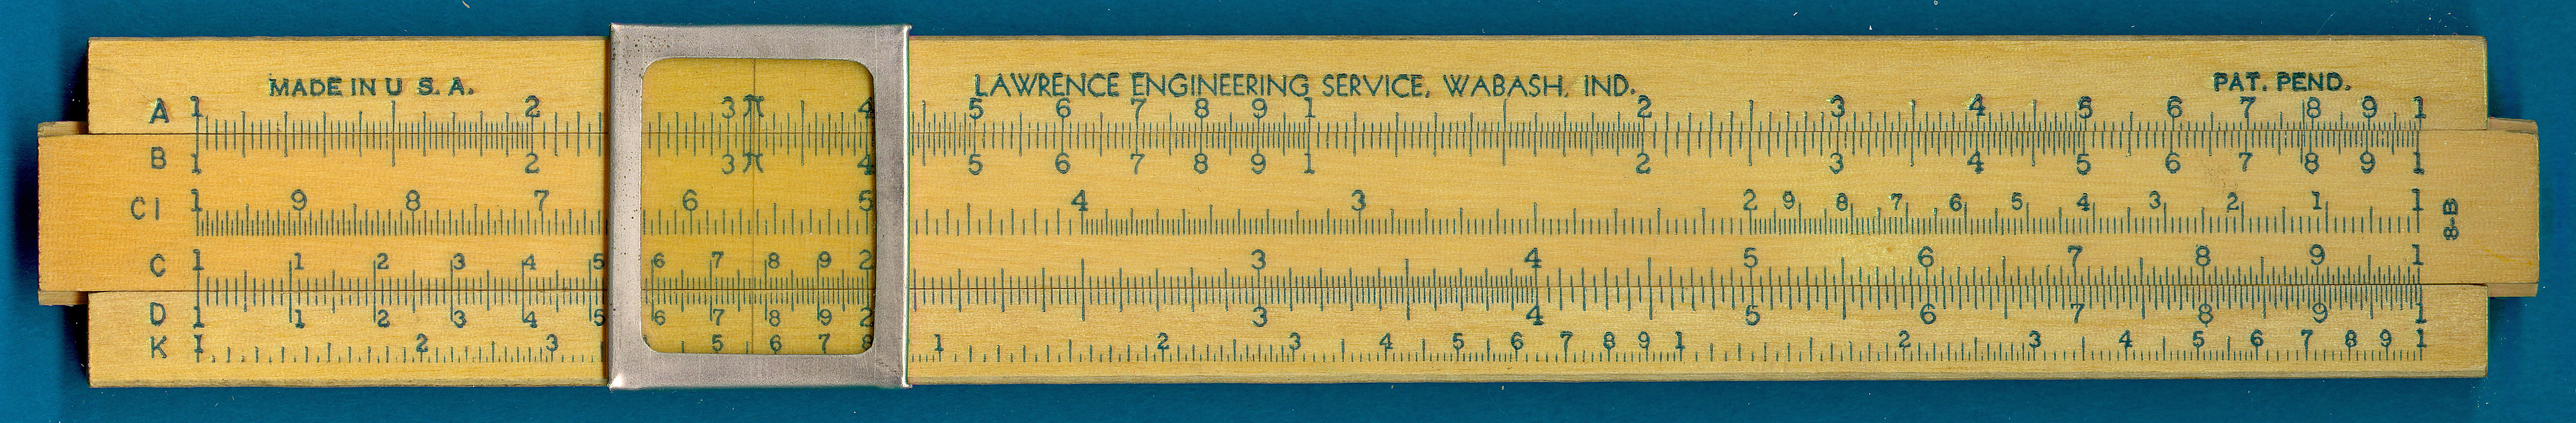 Lawrence Engineering Services 8-B